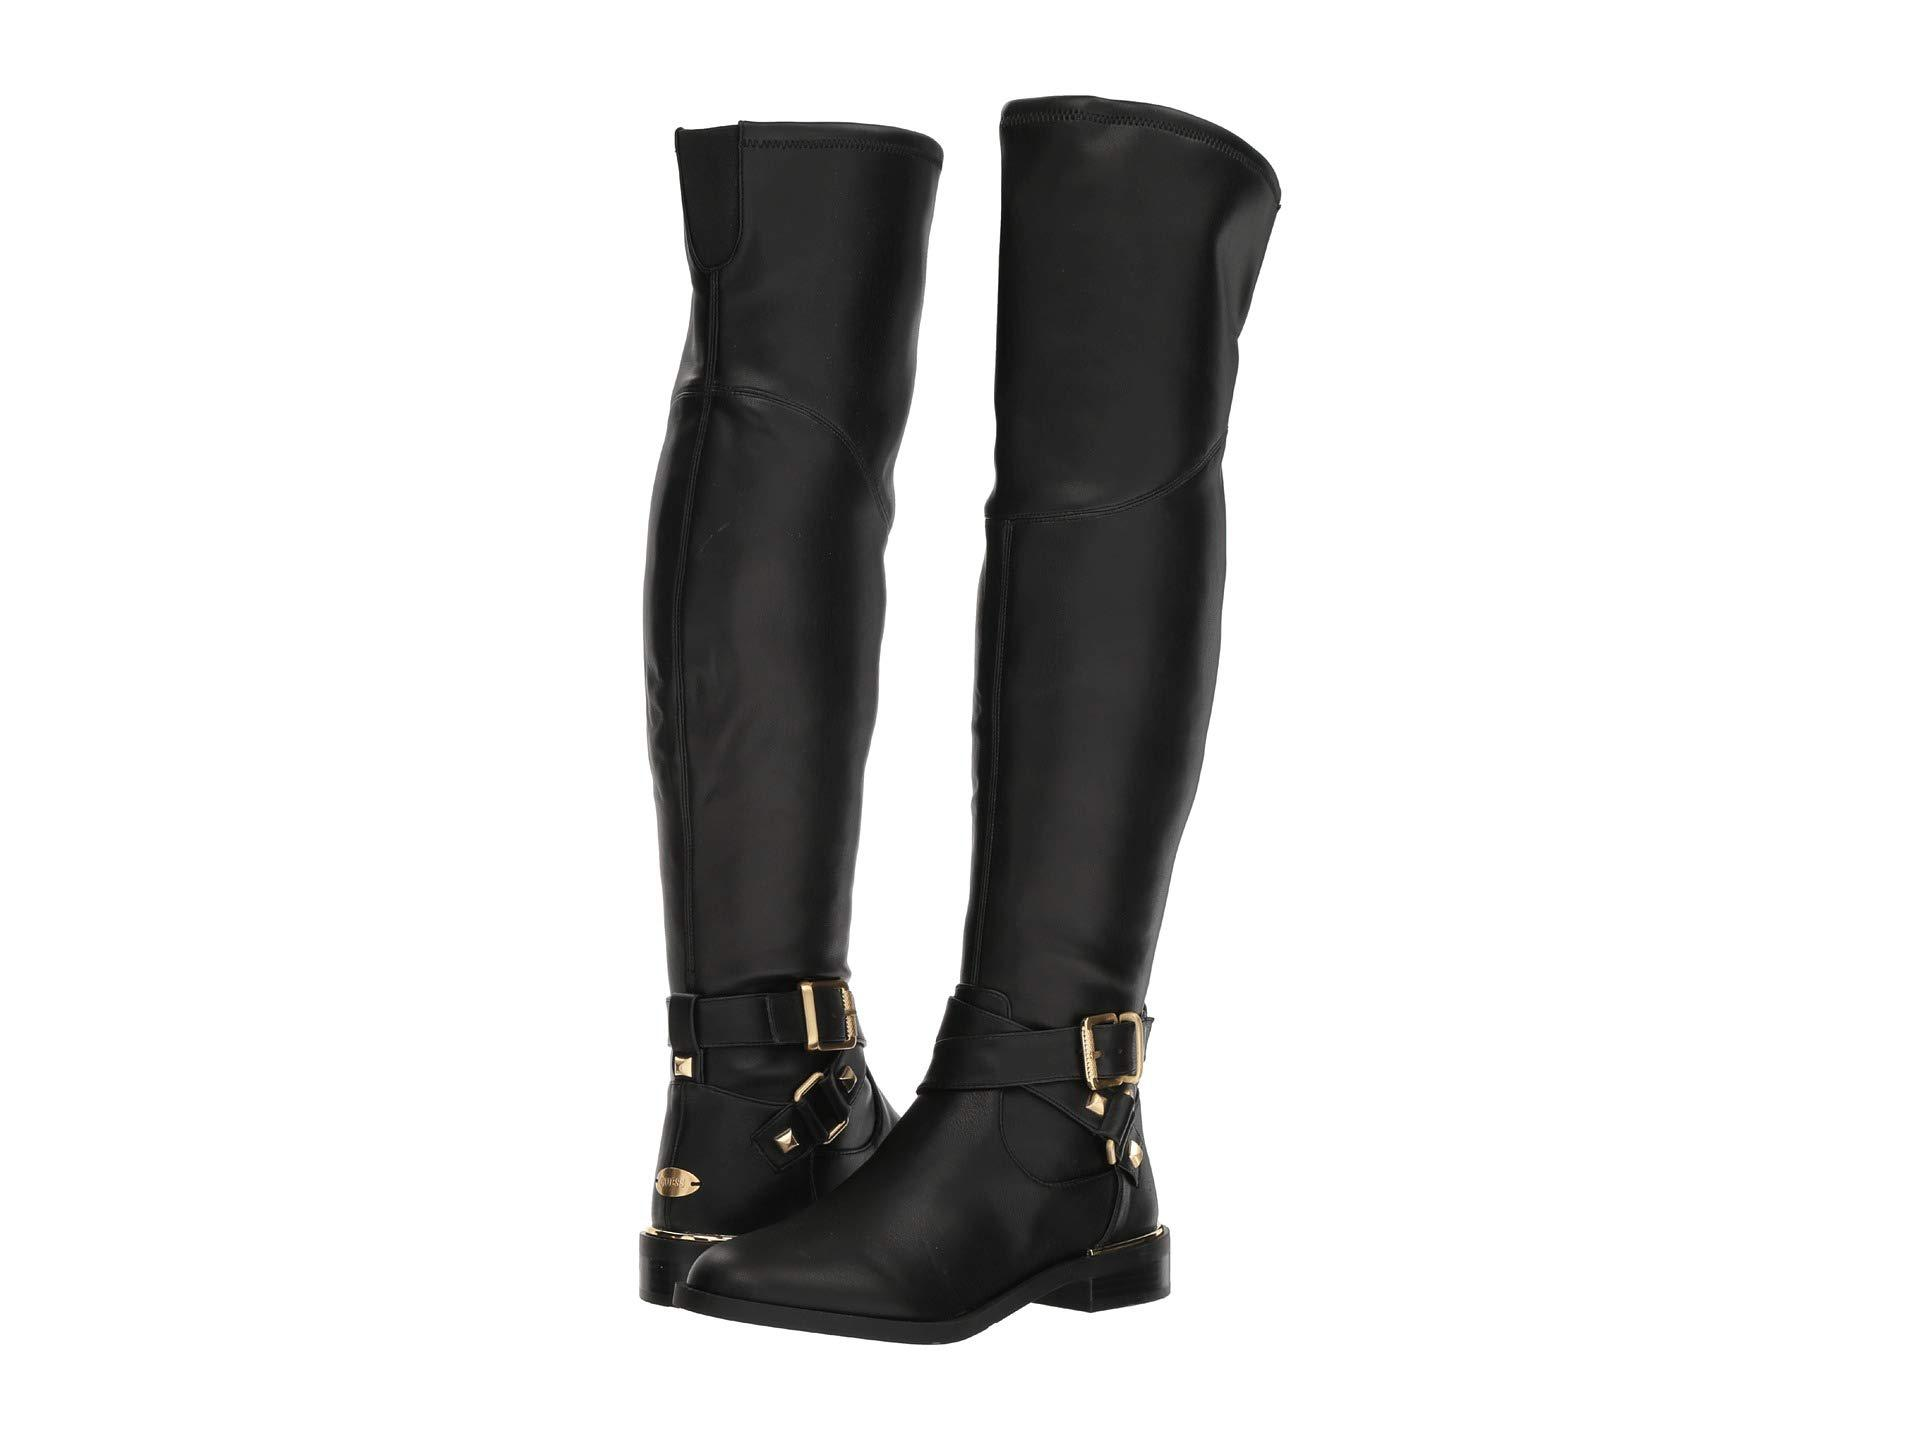 Lyst - Guess Dalary (black Synthetic) Women s Boots in Black 2baea0f5f7830